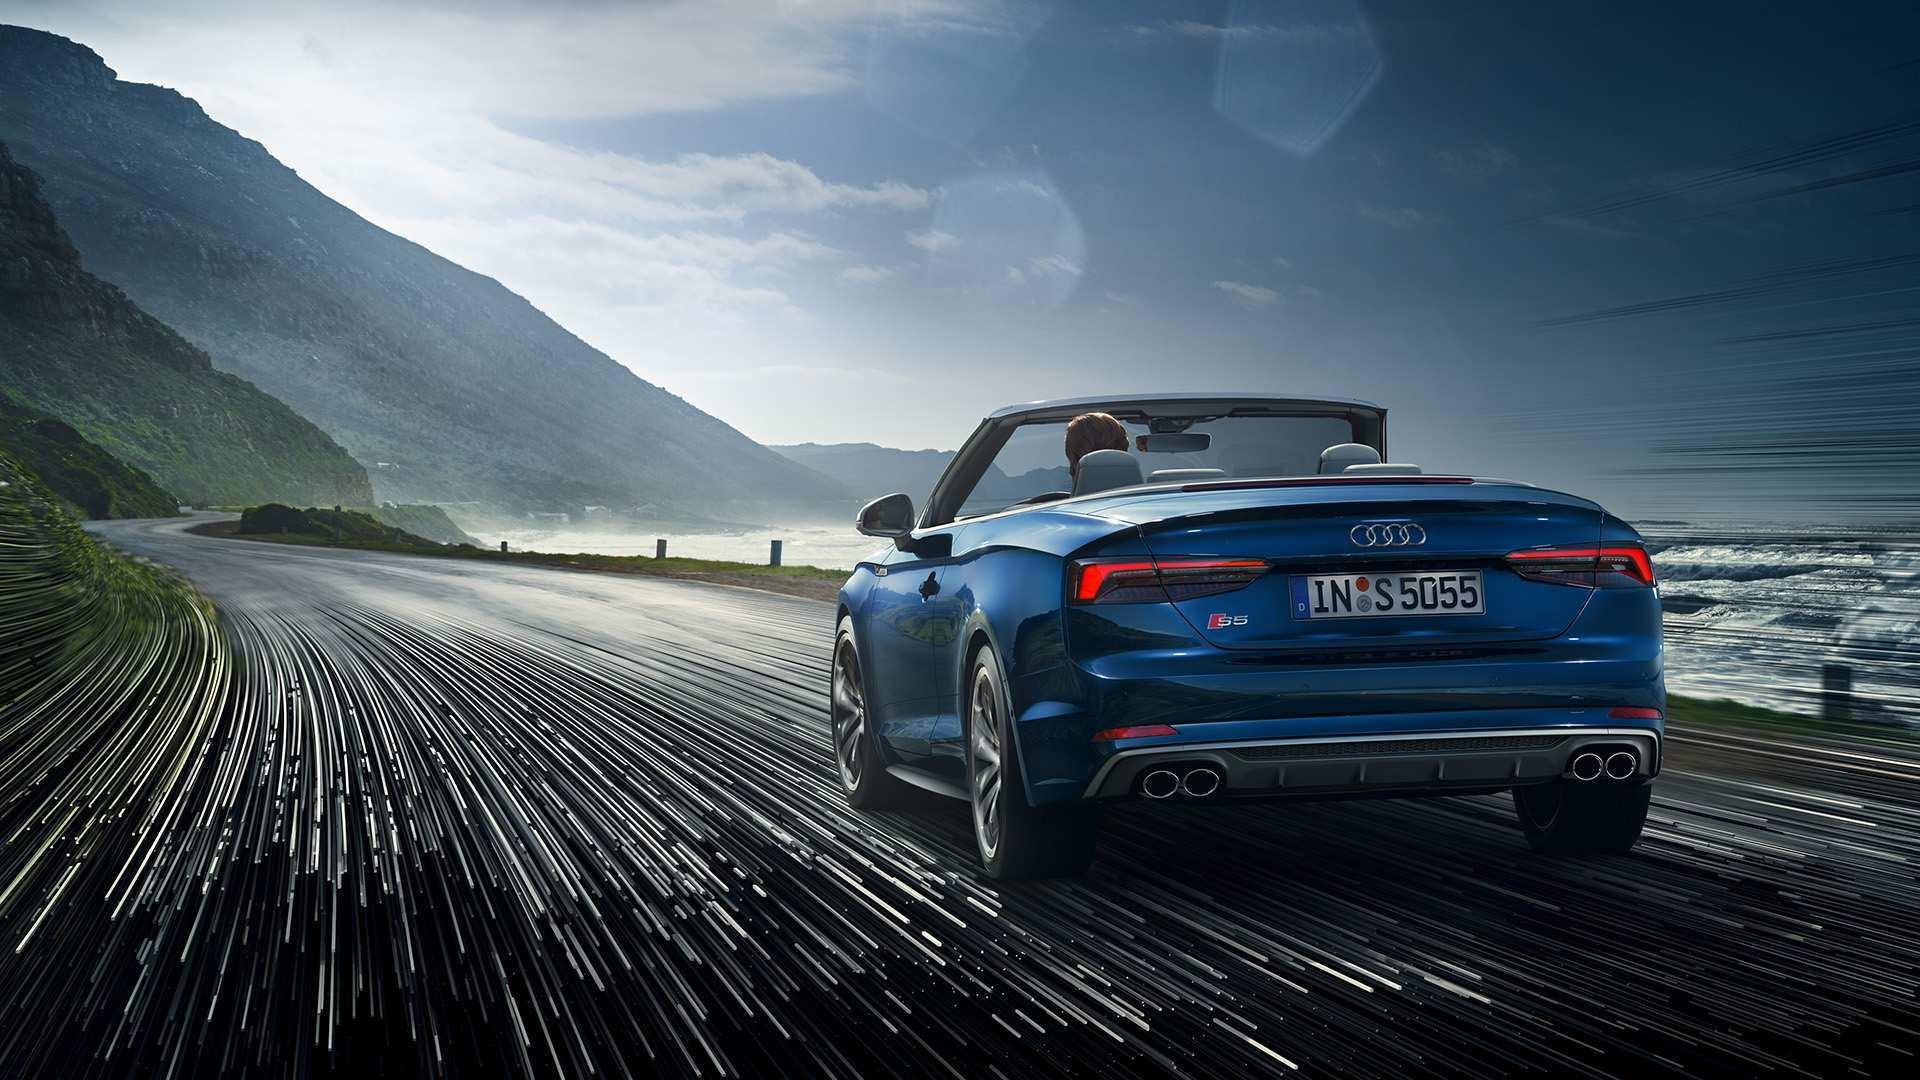 84 A 2019 Audi Rs5 Cabriolet Price And Review